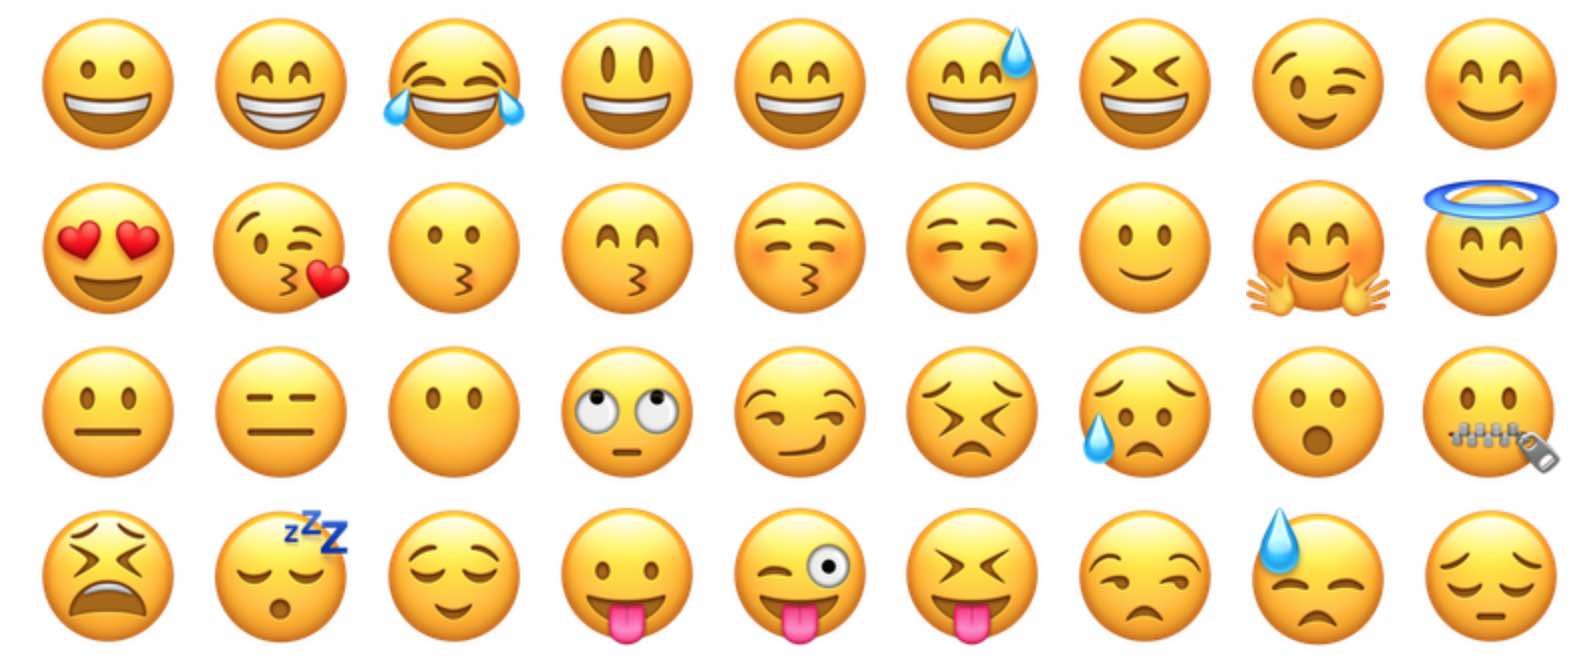 Study: People Who Use More Emojis Have More Sex